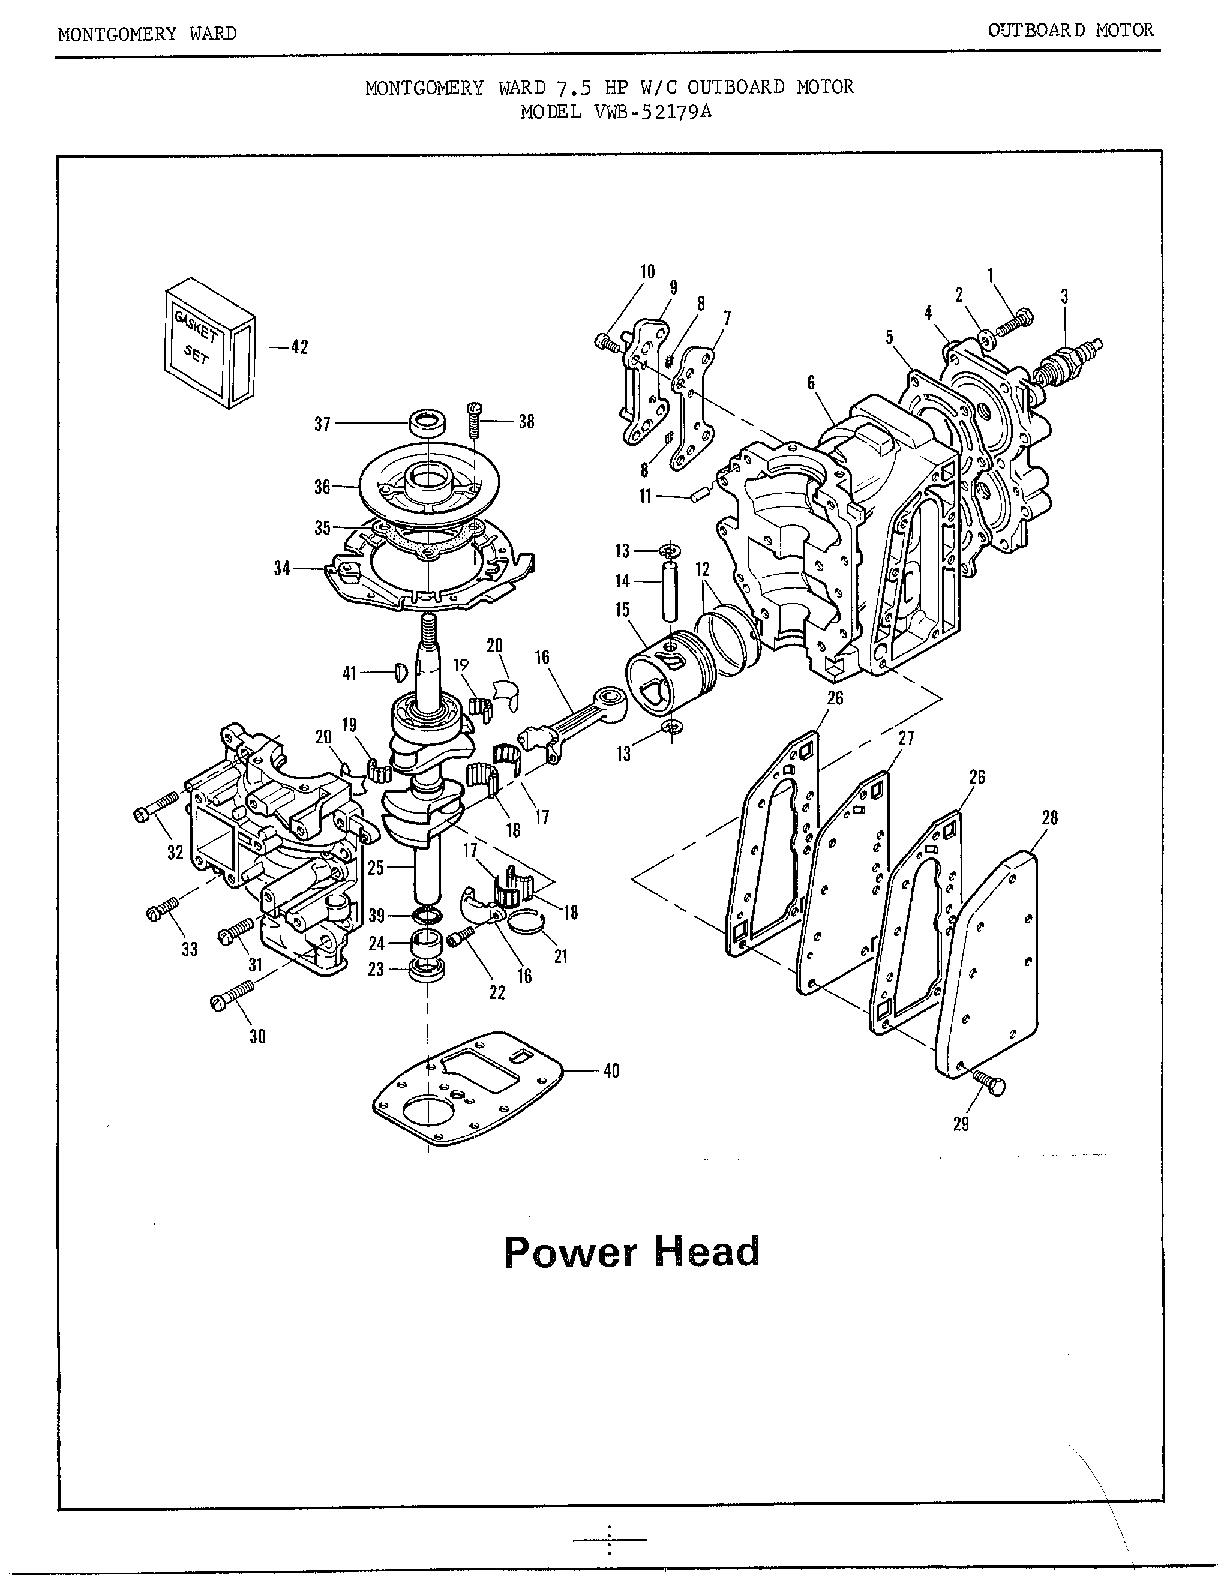 7.5HP OUTBOARD MOTOR/POWER HEAD Diagram & Parts List for